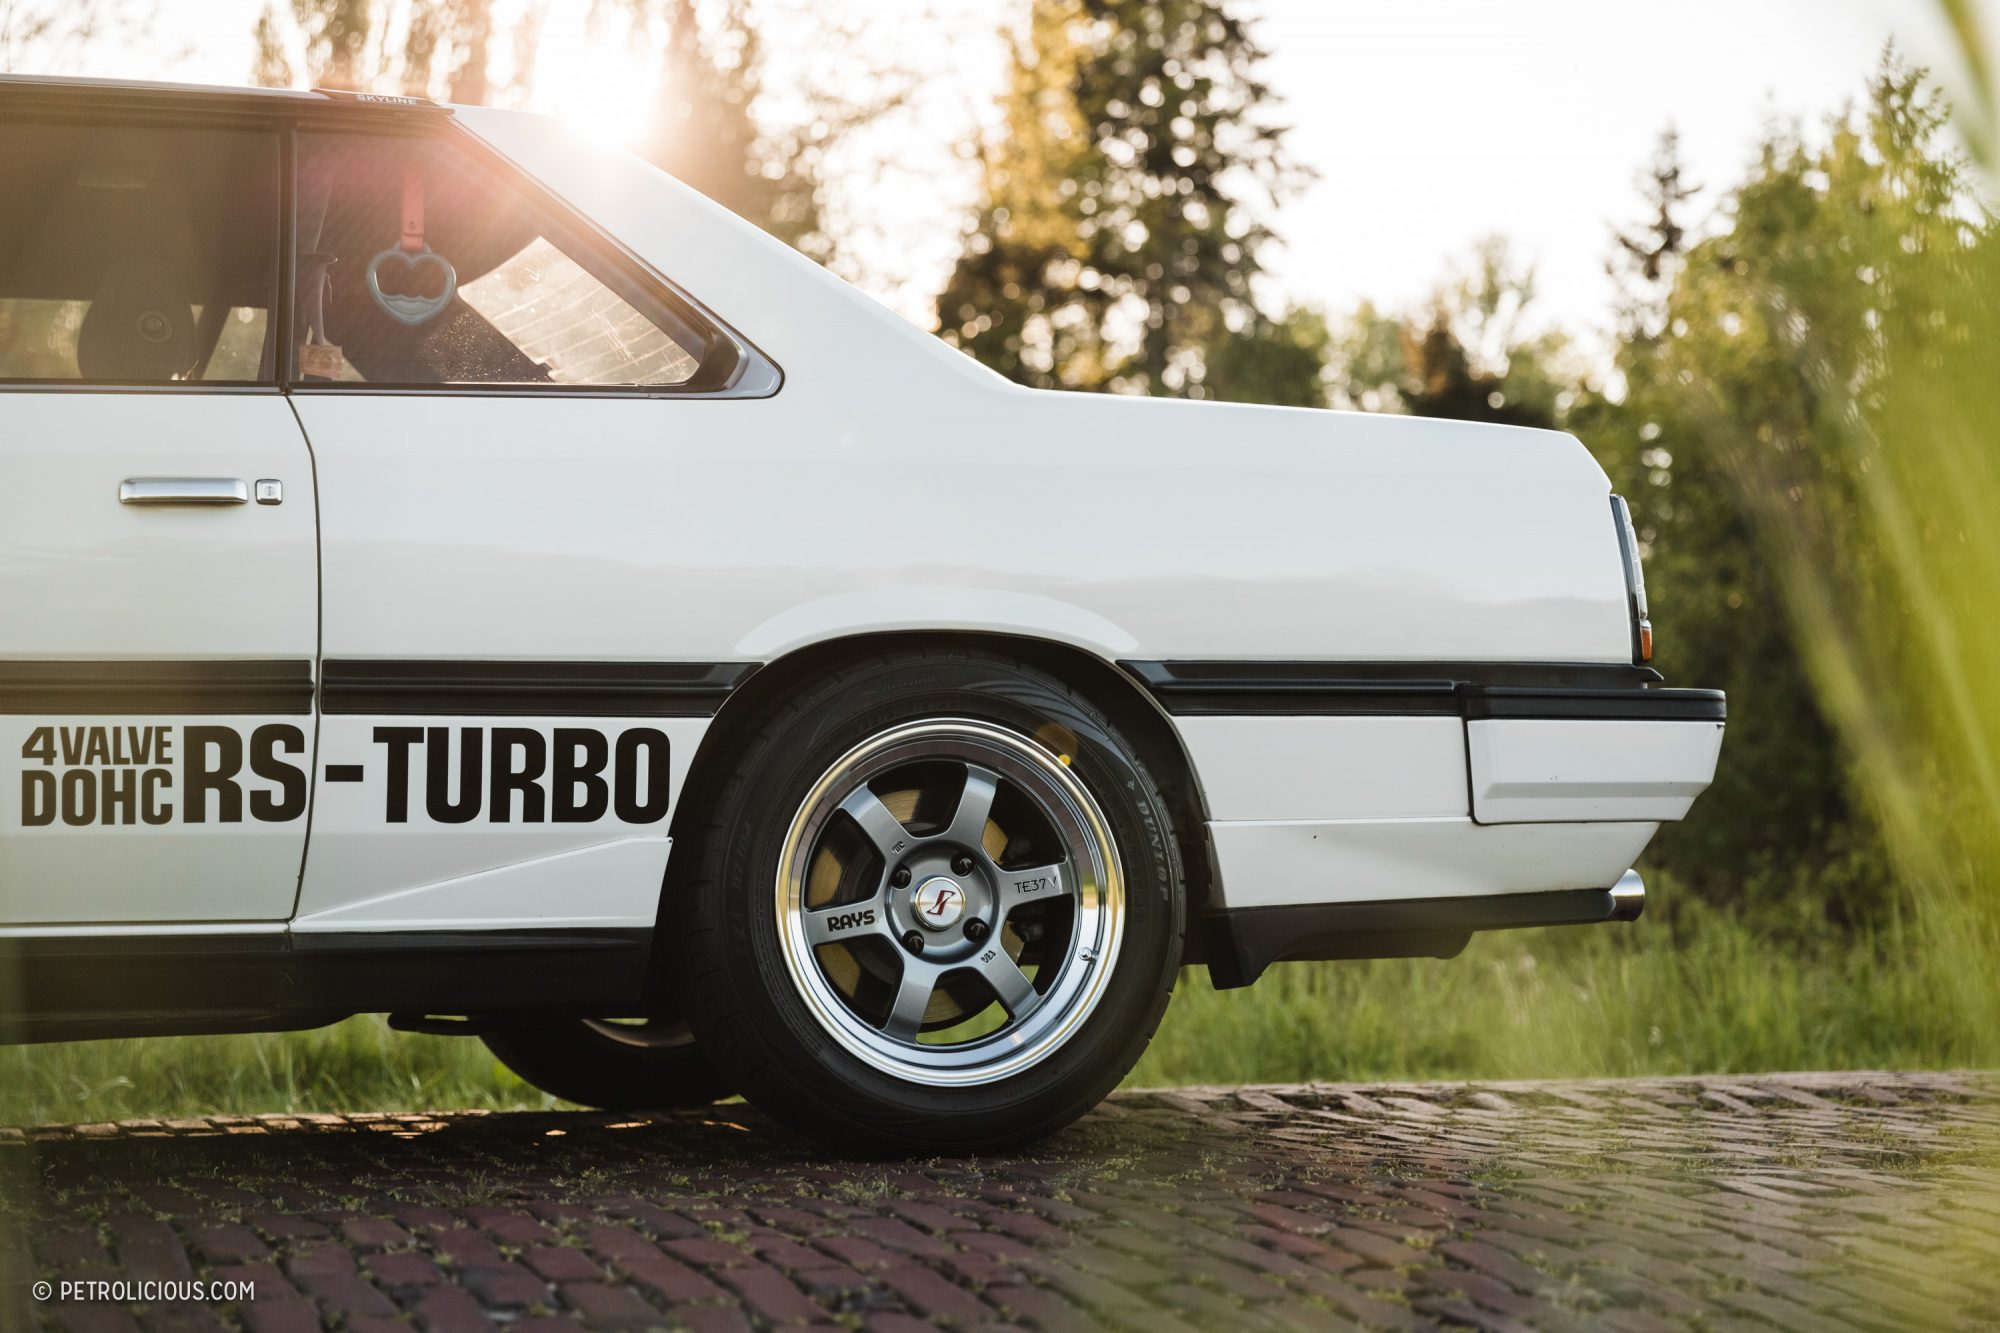 Мечта JDM культуры - Nissan Skyline RS-Turbo, 1983